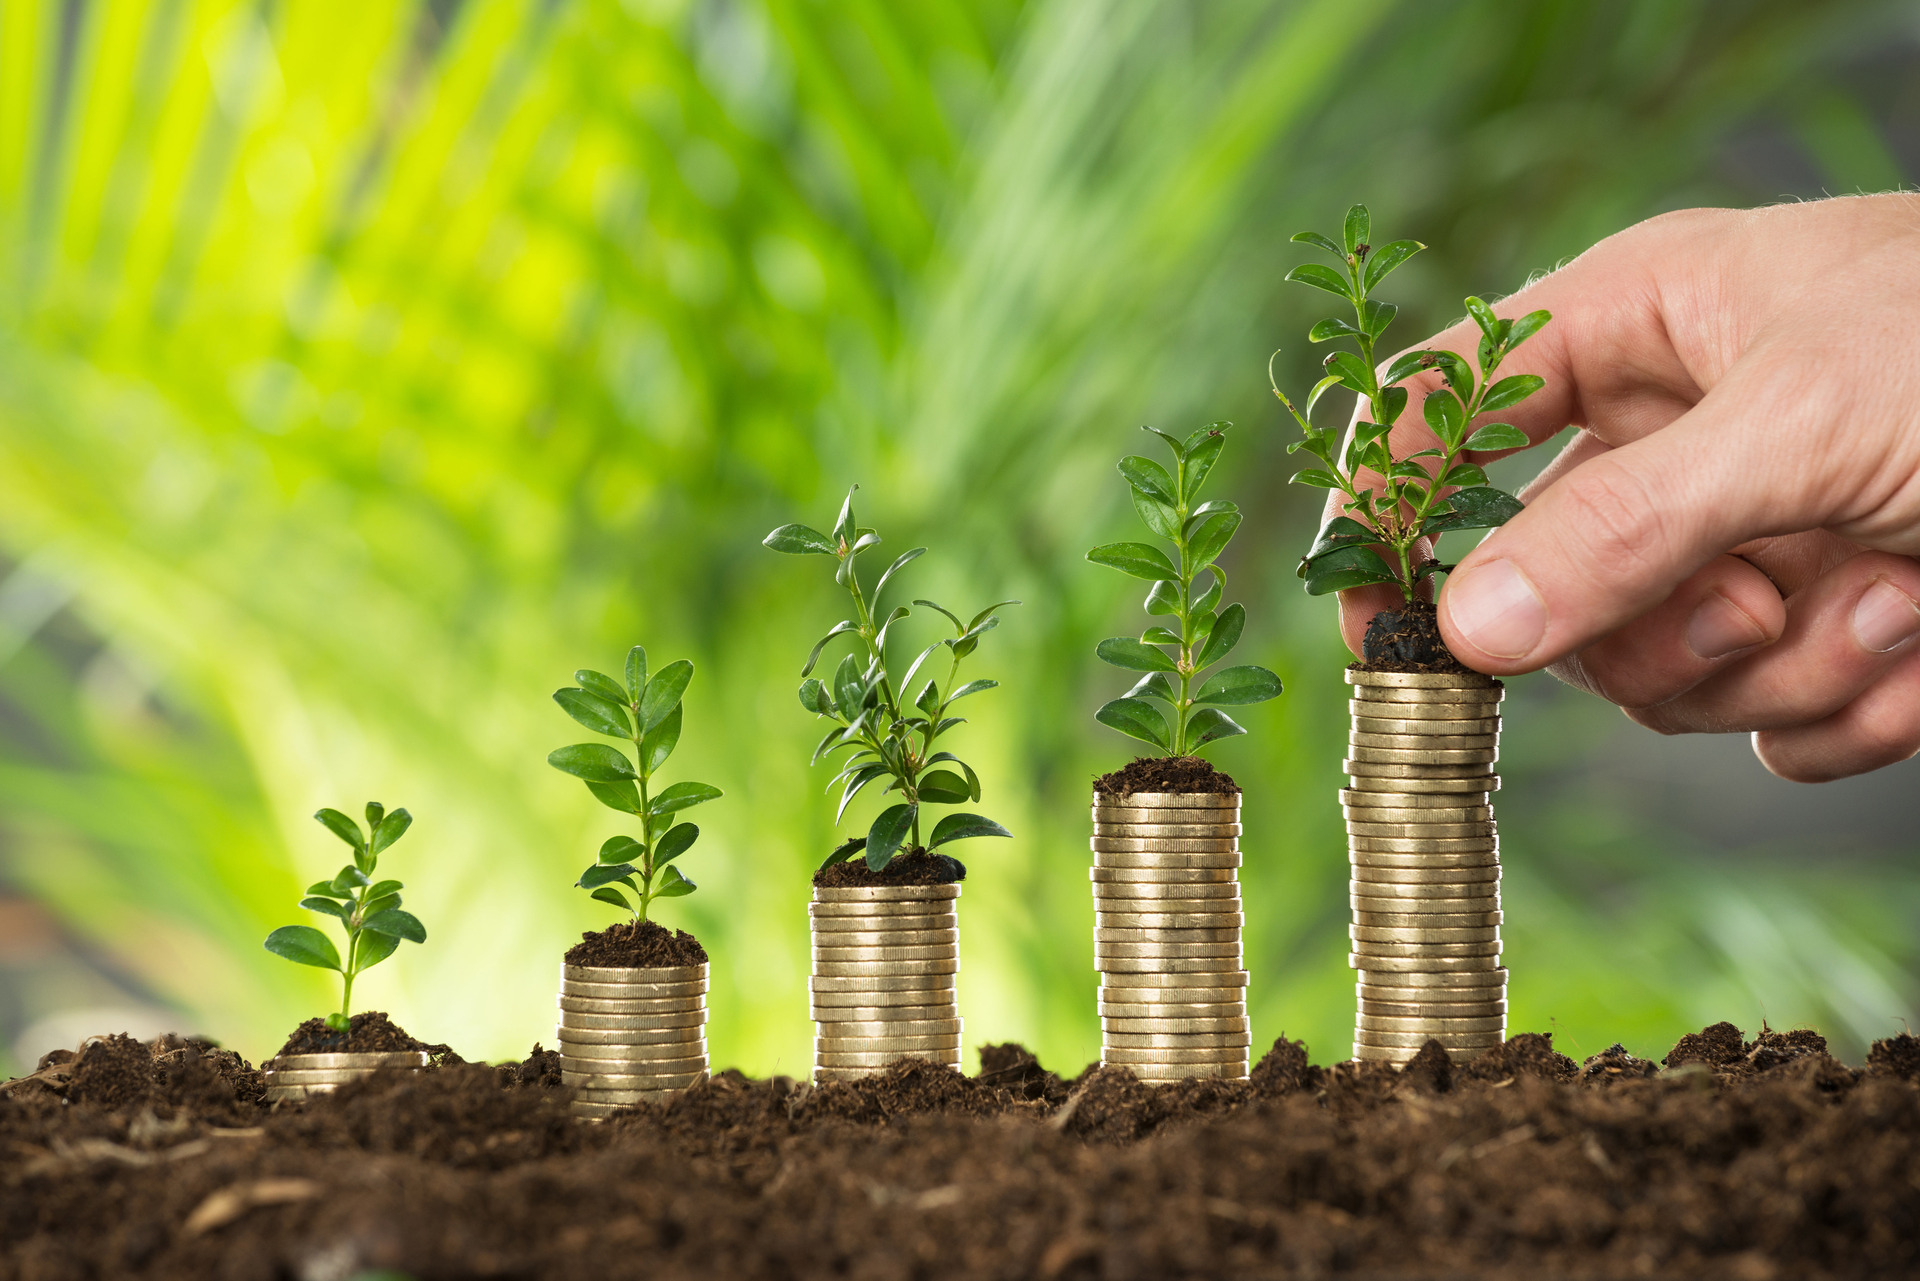 Report calls for institutional investors to help solve social and environmental issues